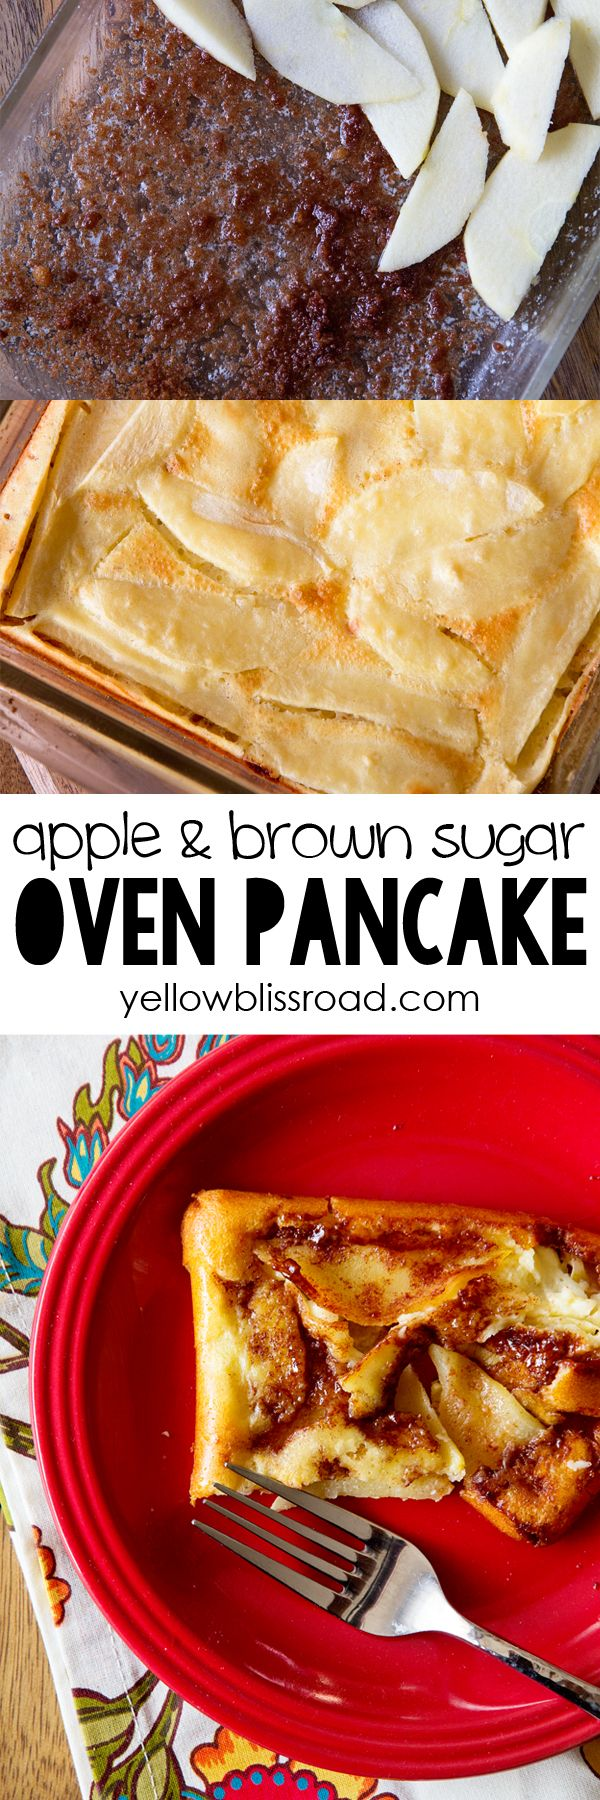 Apple and Brown Sugar Oven Baked Pancake - soo good and really easy!! Aaron wants me to make this one for guests